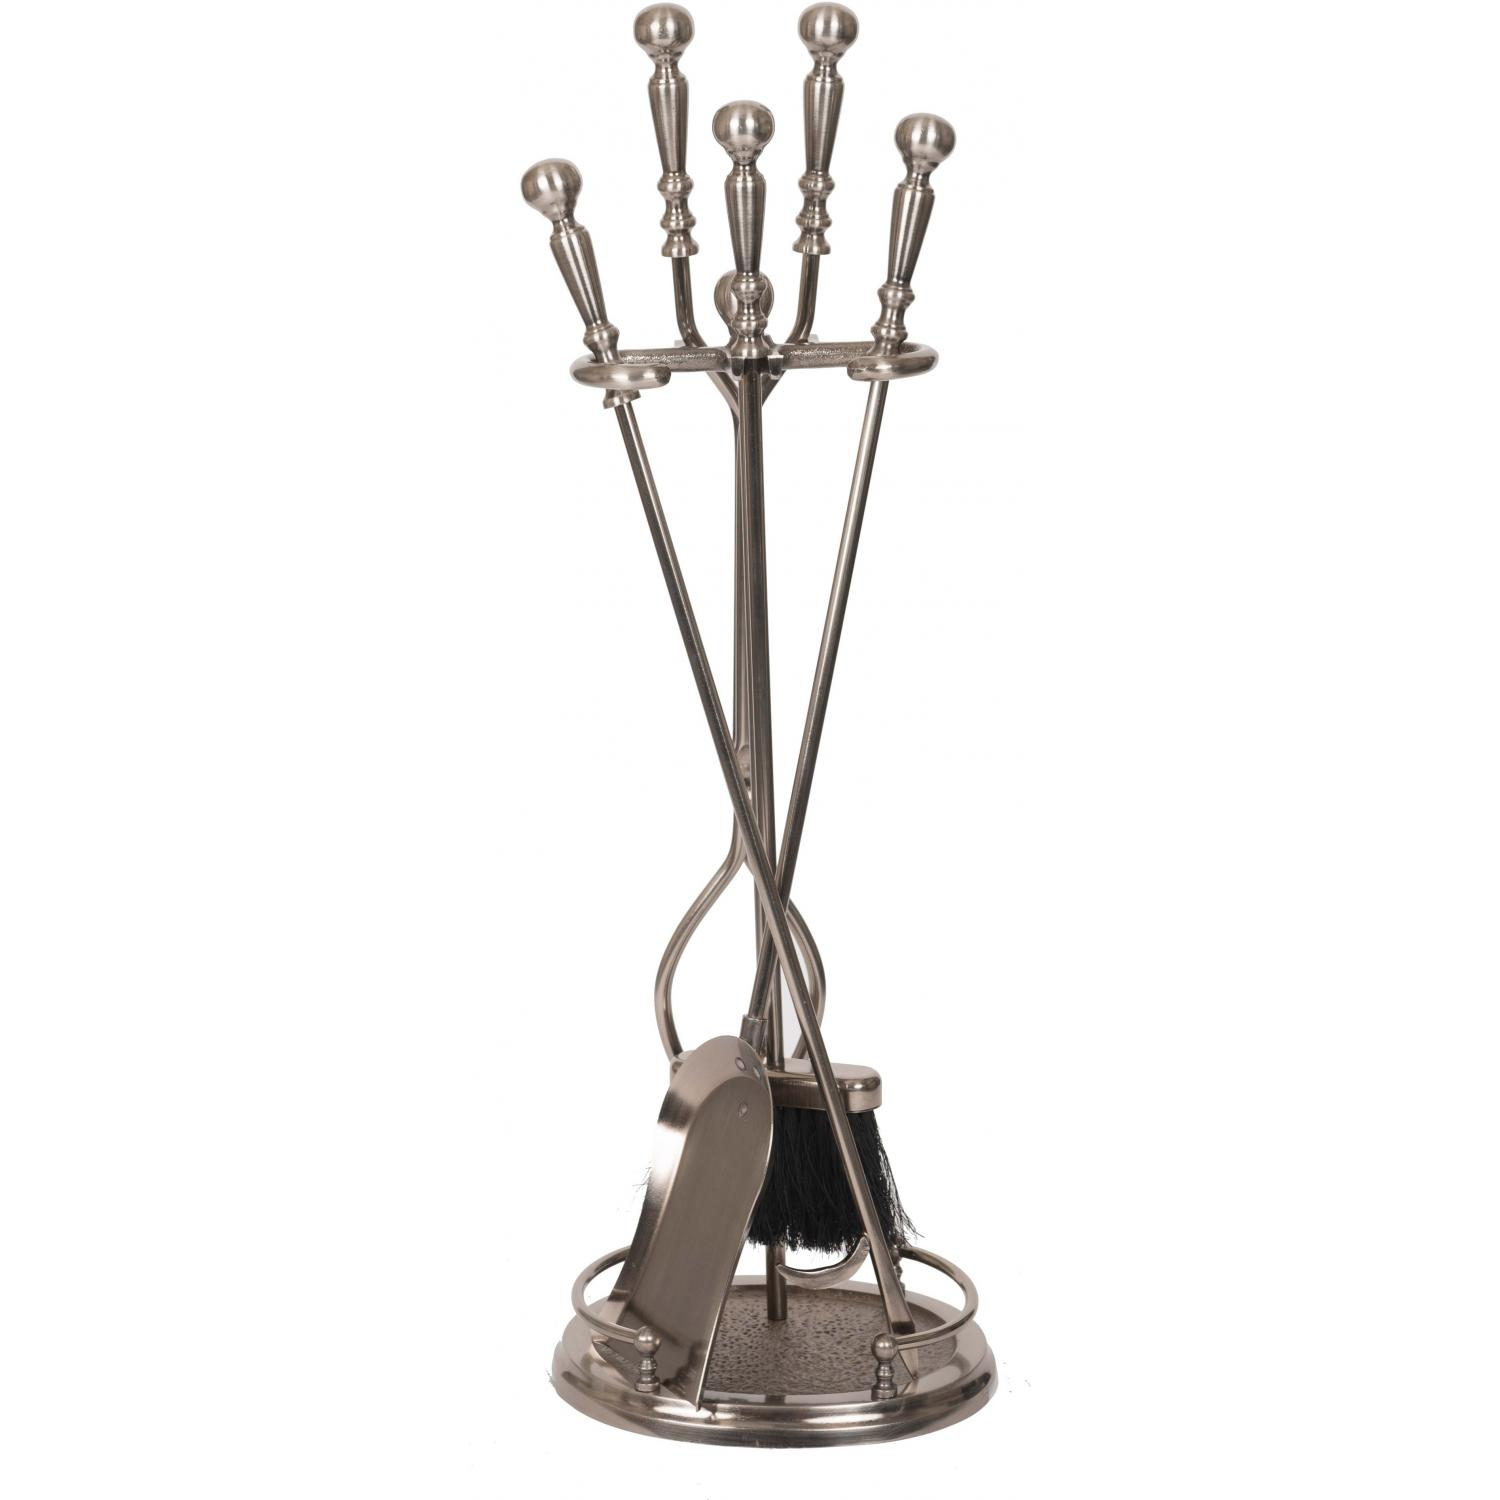 Alpine Flame 5-piece Pewter Fireplace Tool Set